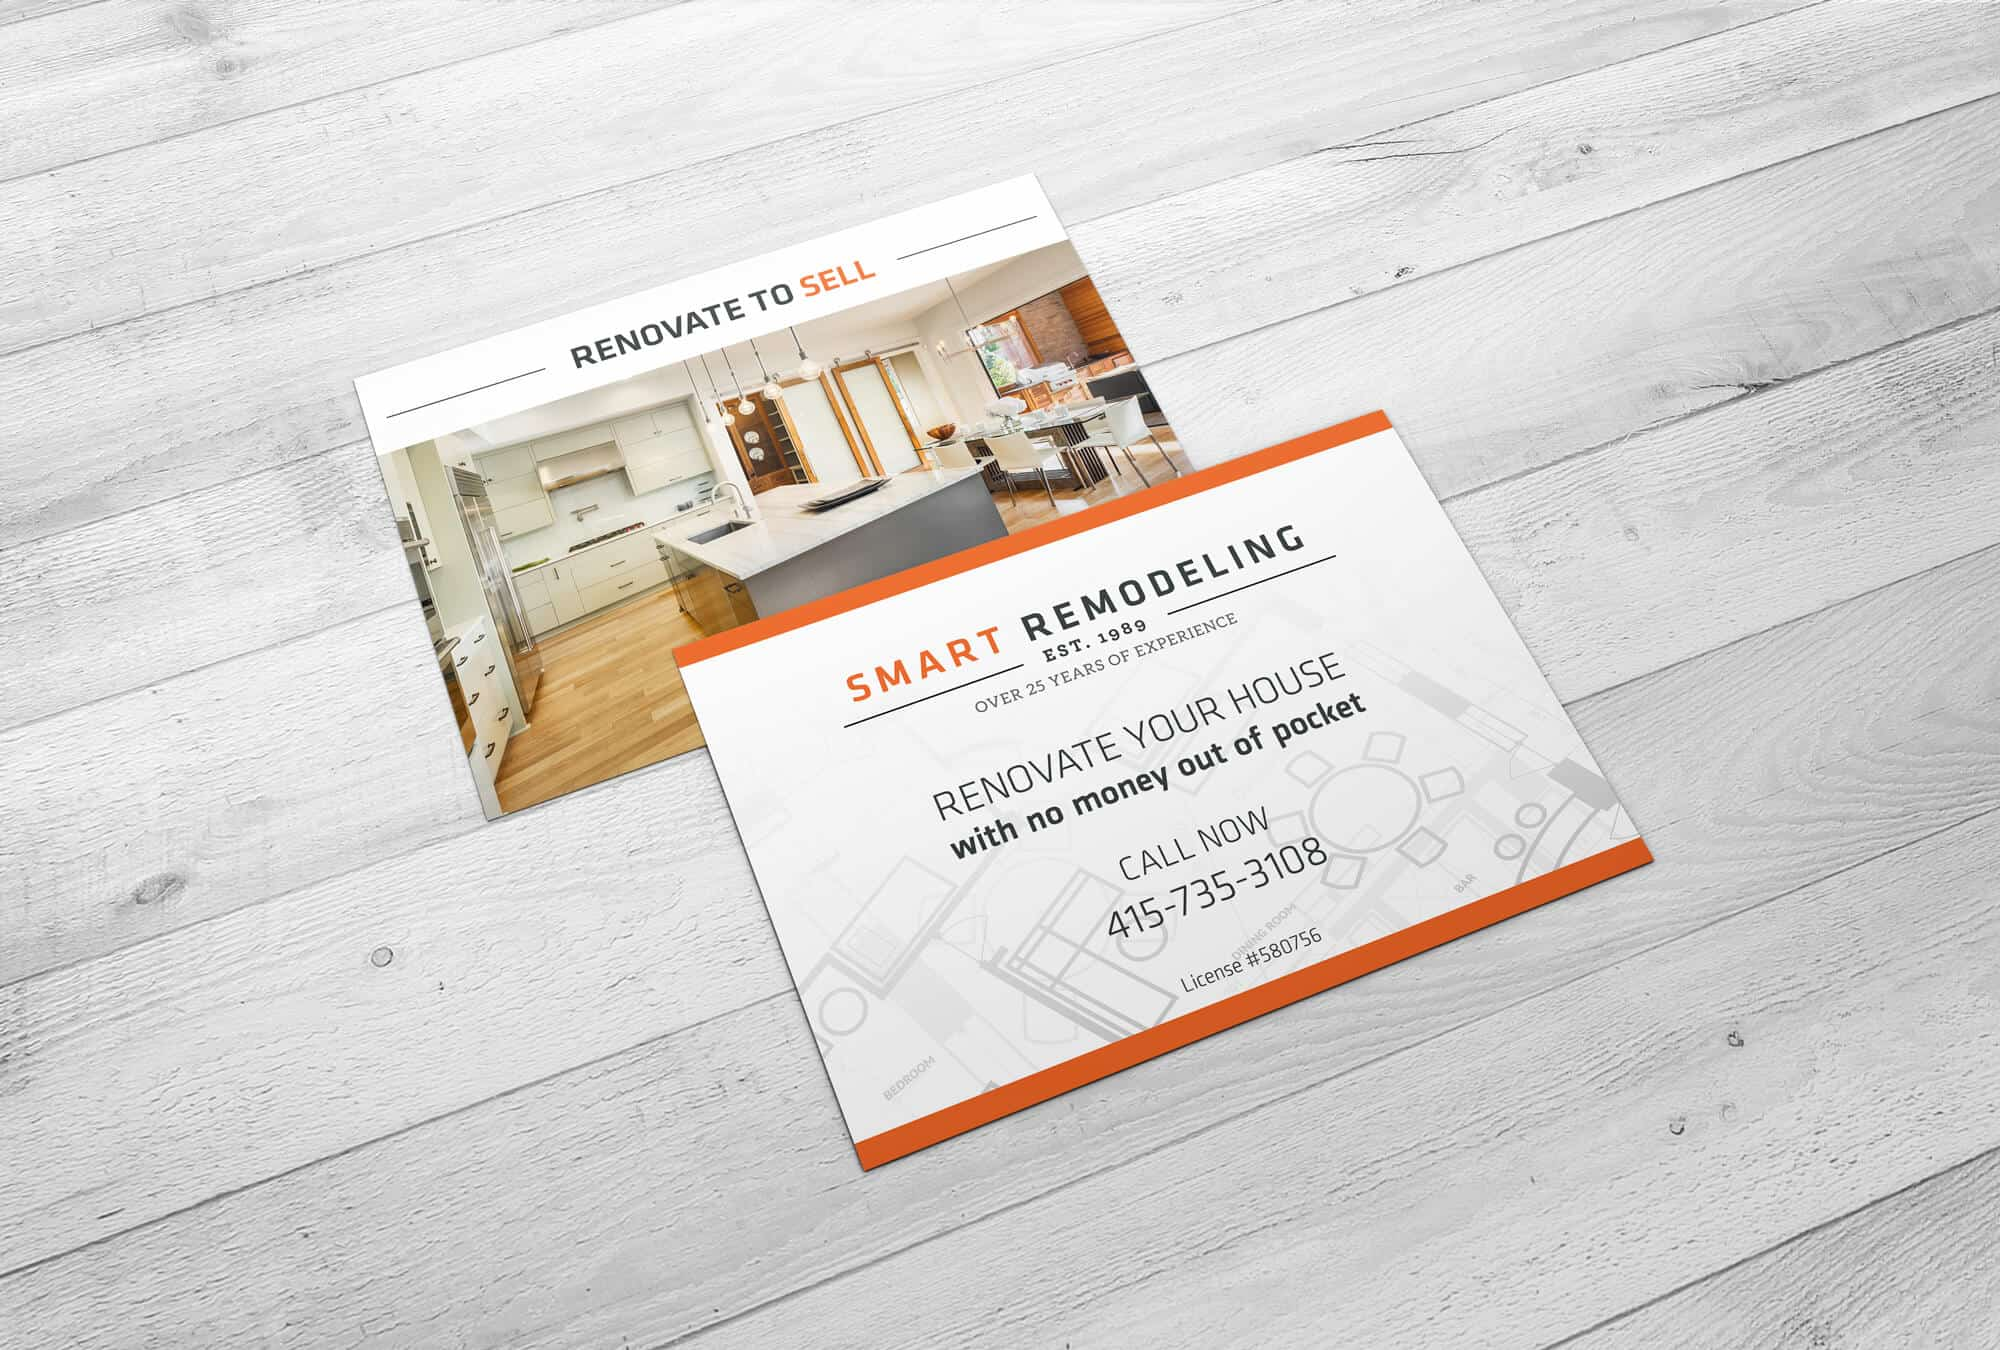 Smart Remodeling – Flyer Design